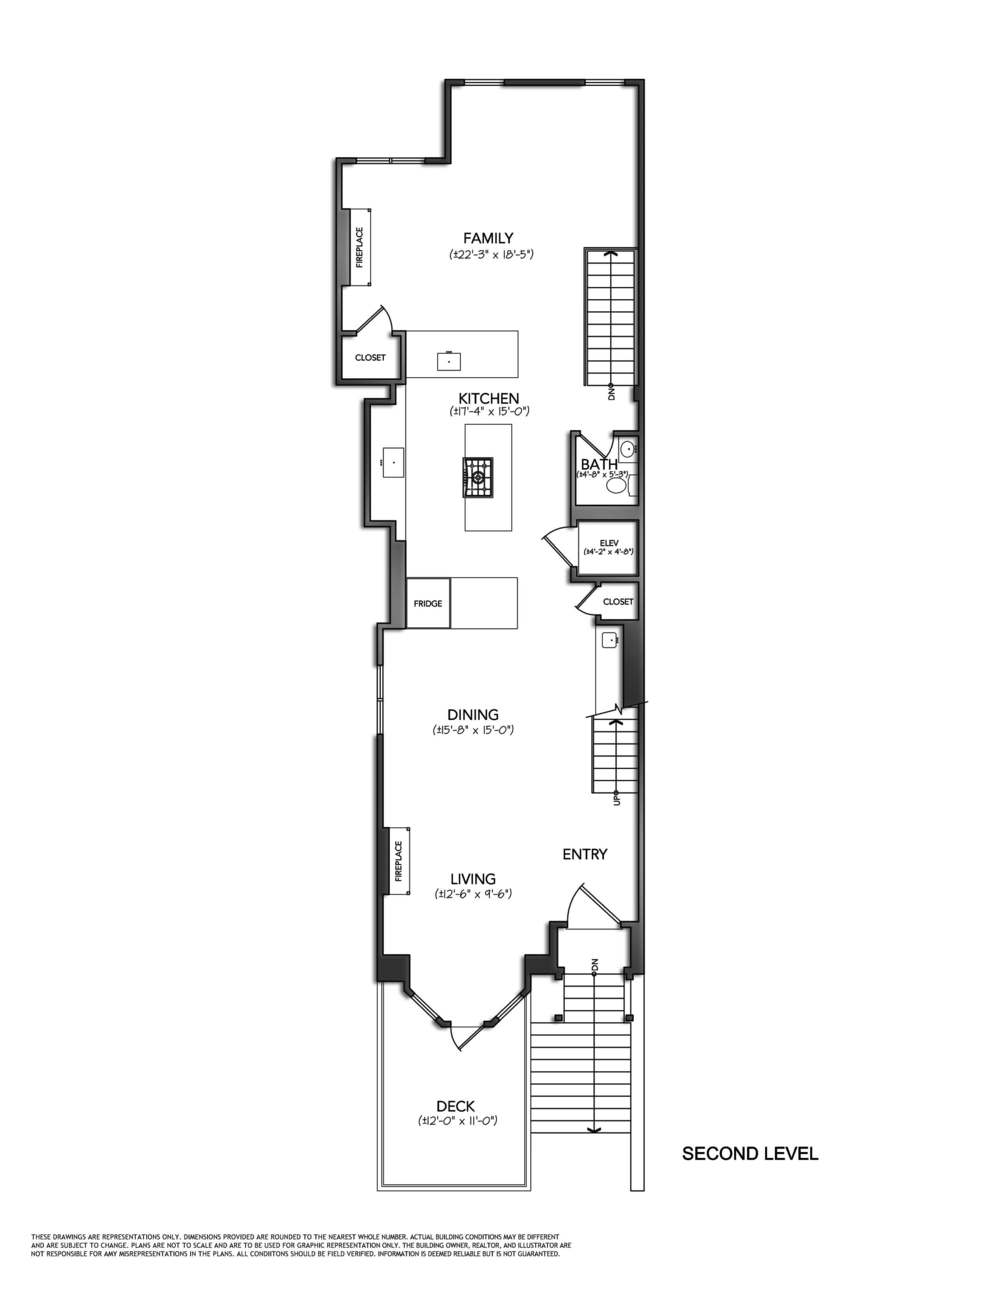 837 SVN - Floor plans - Altered for Website_Redacted_Page_2.jpg